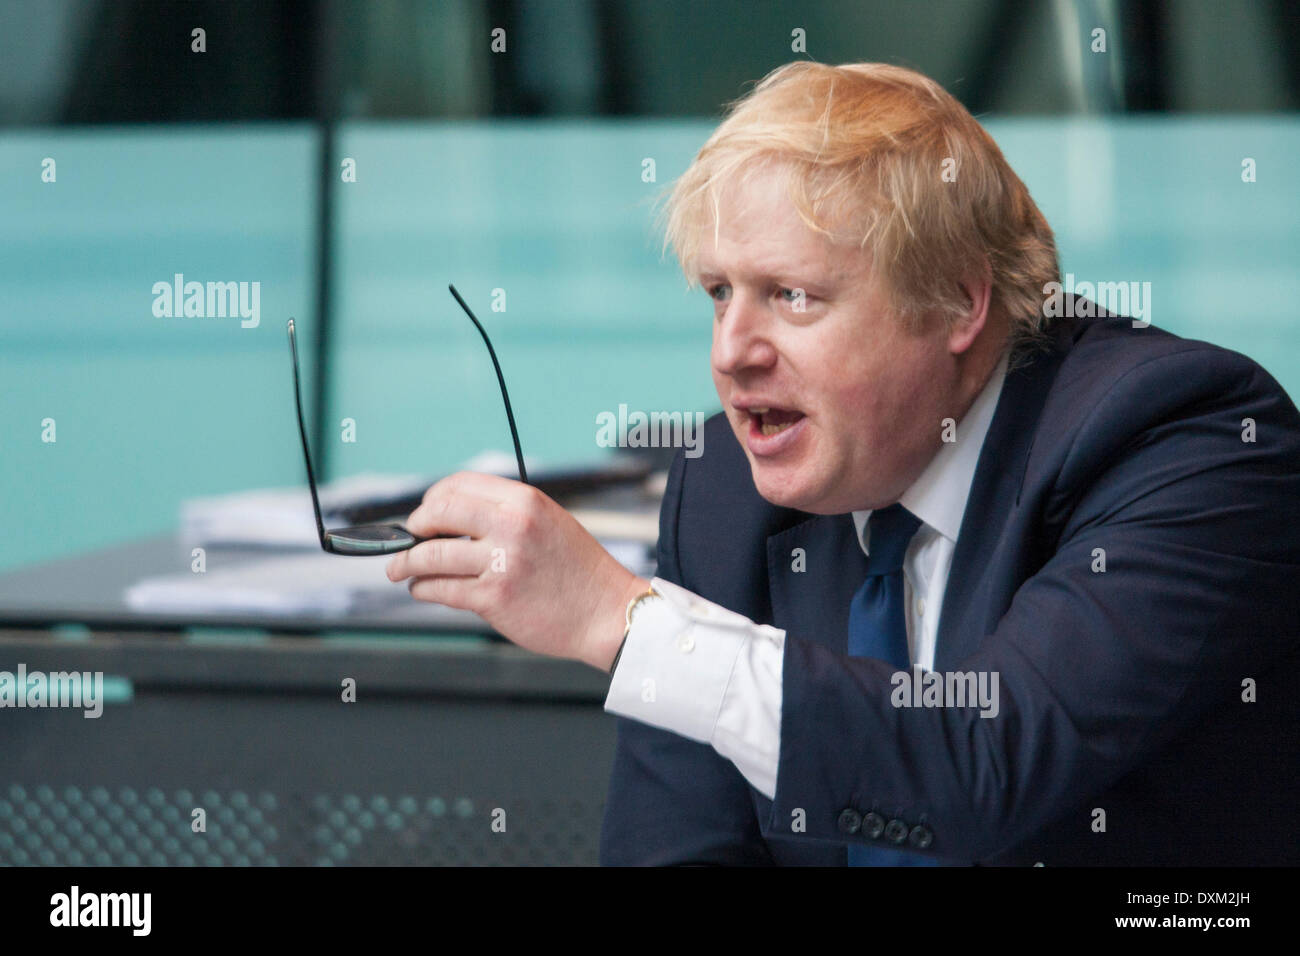 London, March 27th 2014. Accused of being flippant, Mayor of London Boris Johnson in a heated exchange as the Police and Crime Committee of the London Assembly question him on undercover policing and the governance of the Metropolitan Police. Credit:  Paul Davey/Alamy Live News - Stock Image